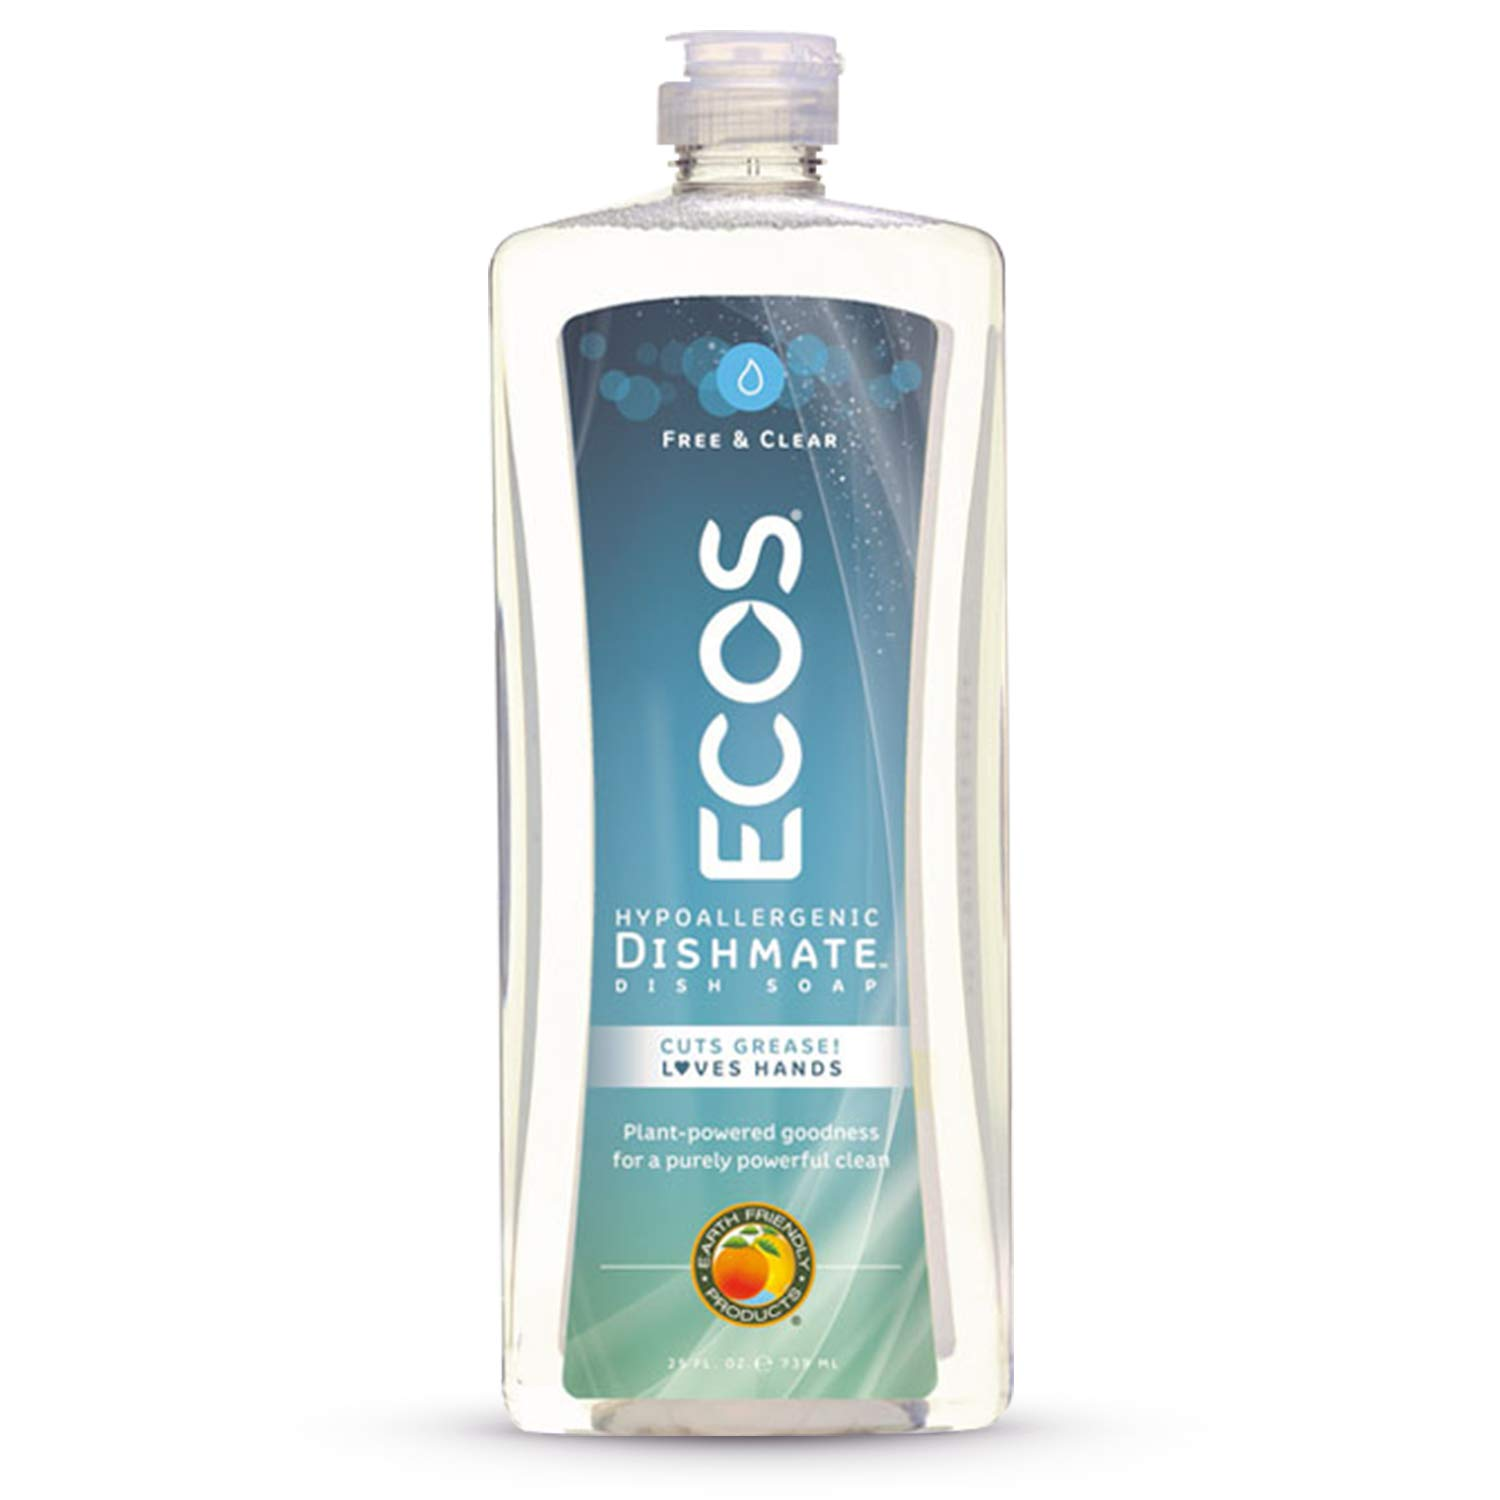 ECOS Dishmate Dish Liquid, Free and Clear 25 oz. (Pack of 2)